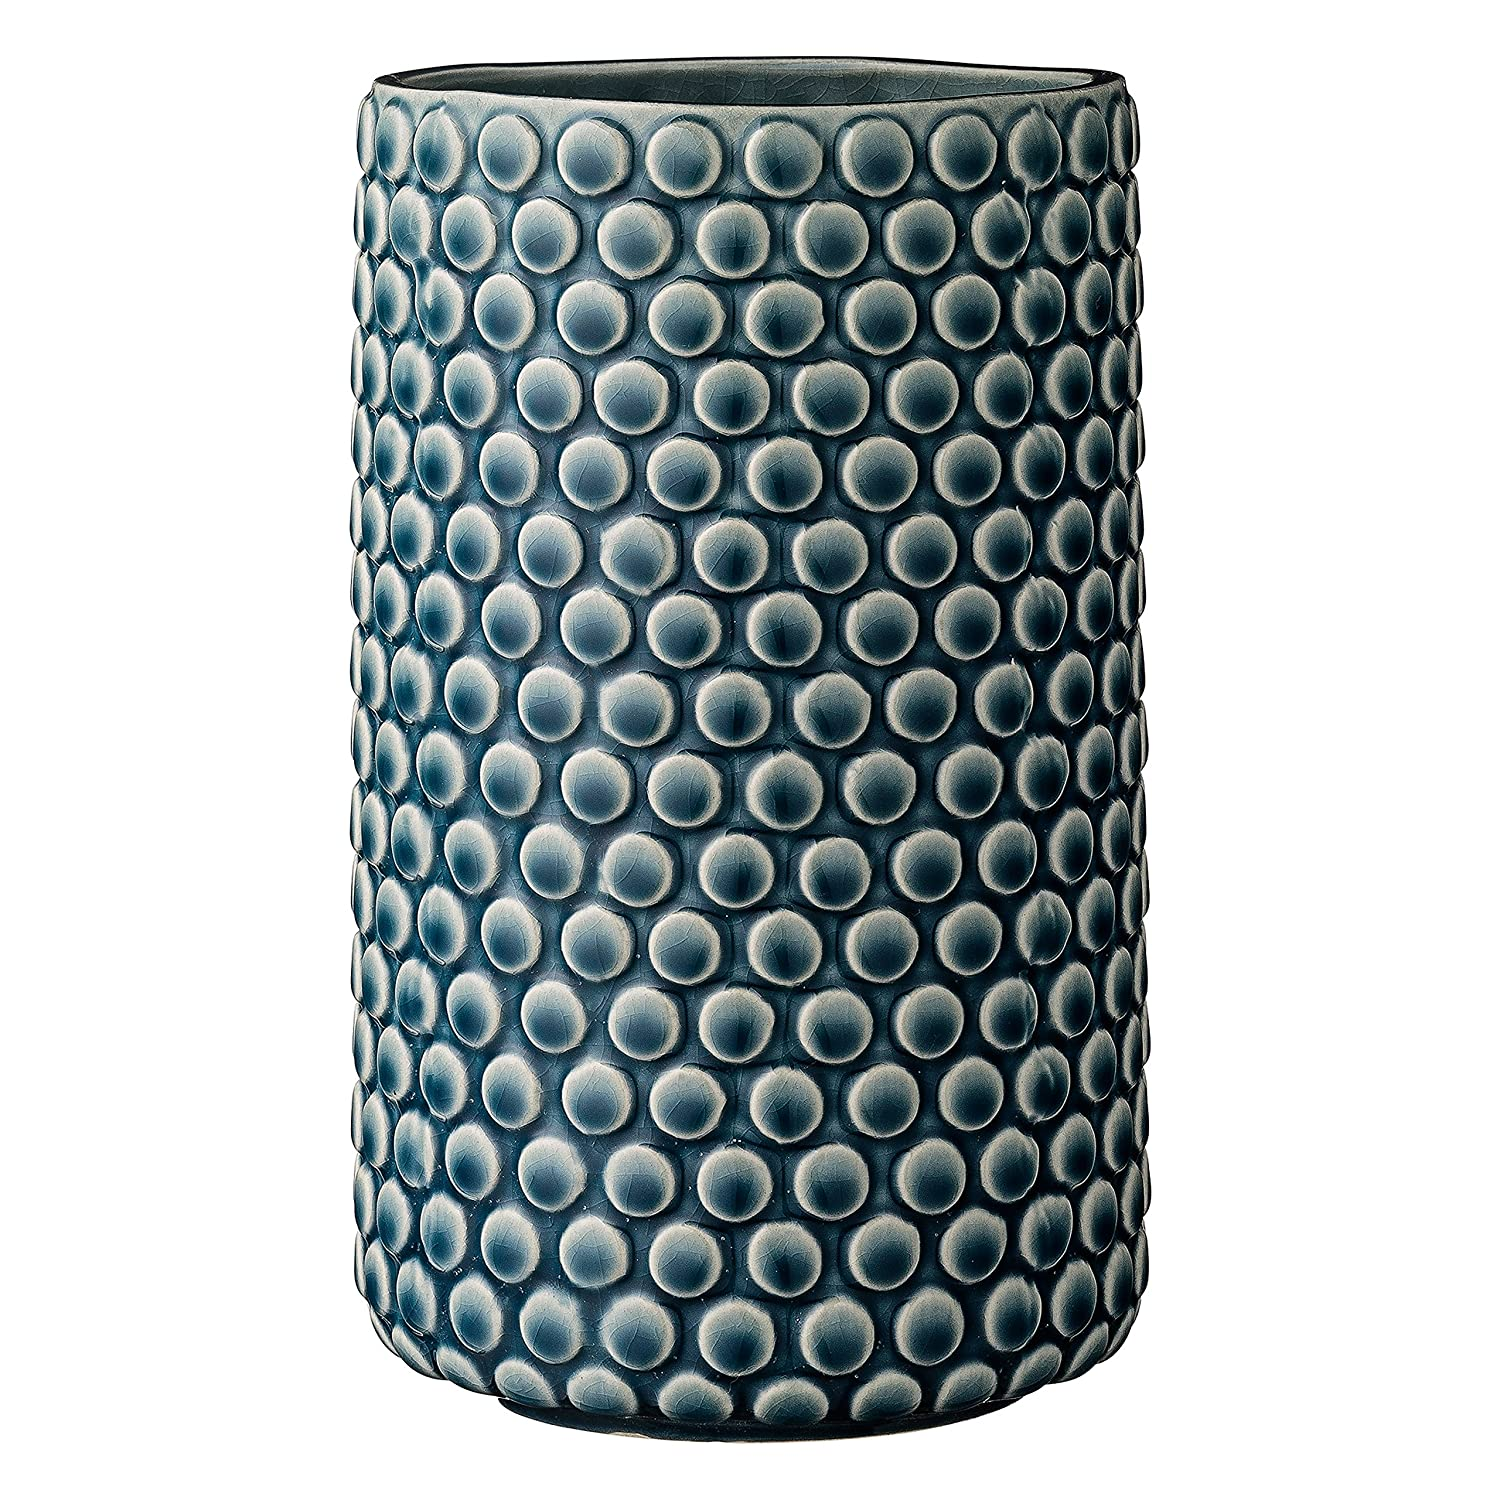 Bloomingville Teal Ceramic Vase with Polka Dot Design